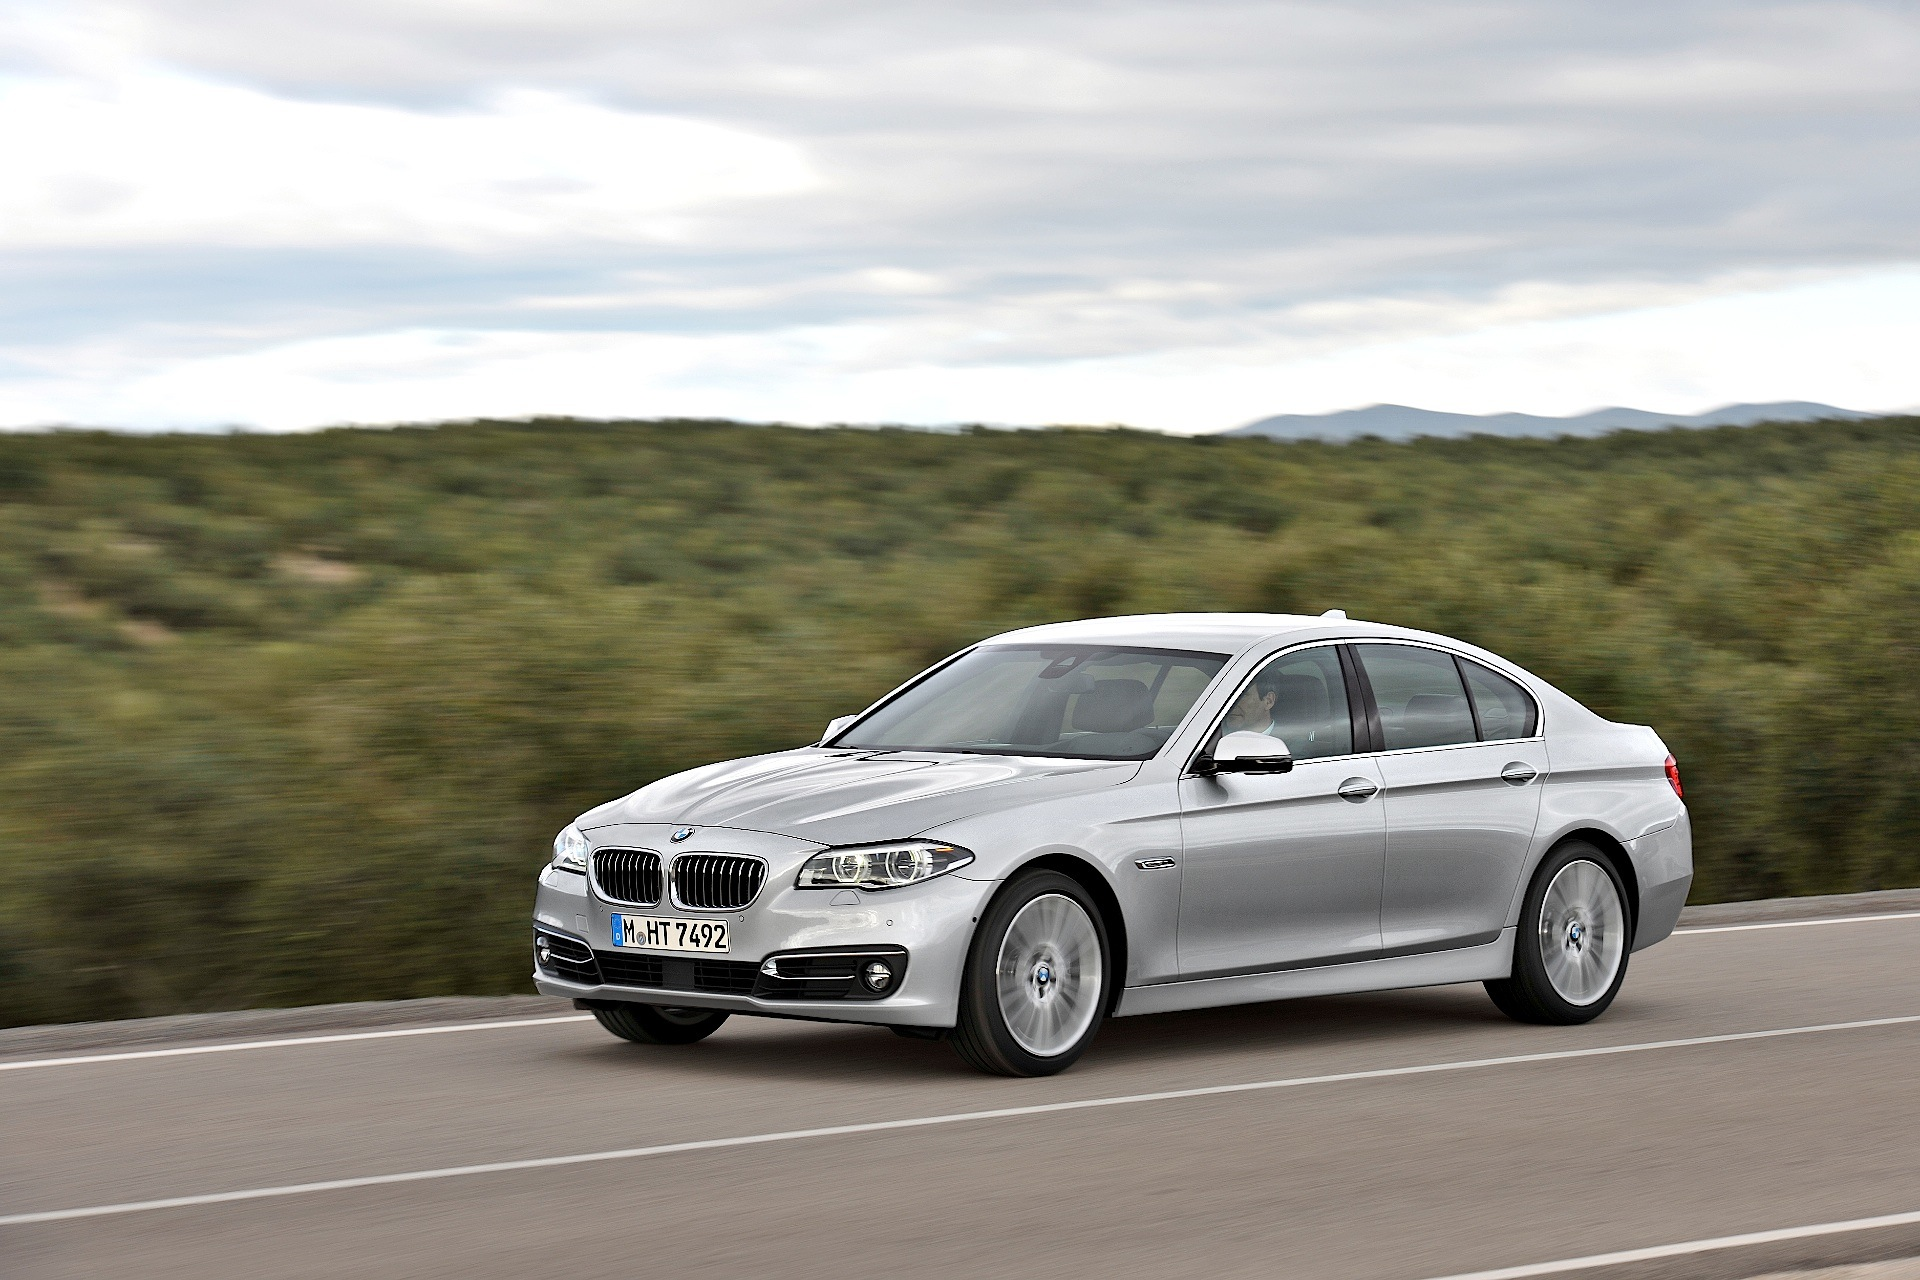 BMW 5 series 528i 2013 photo - 11